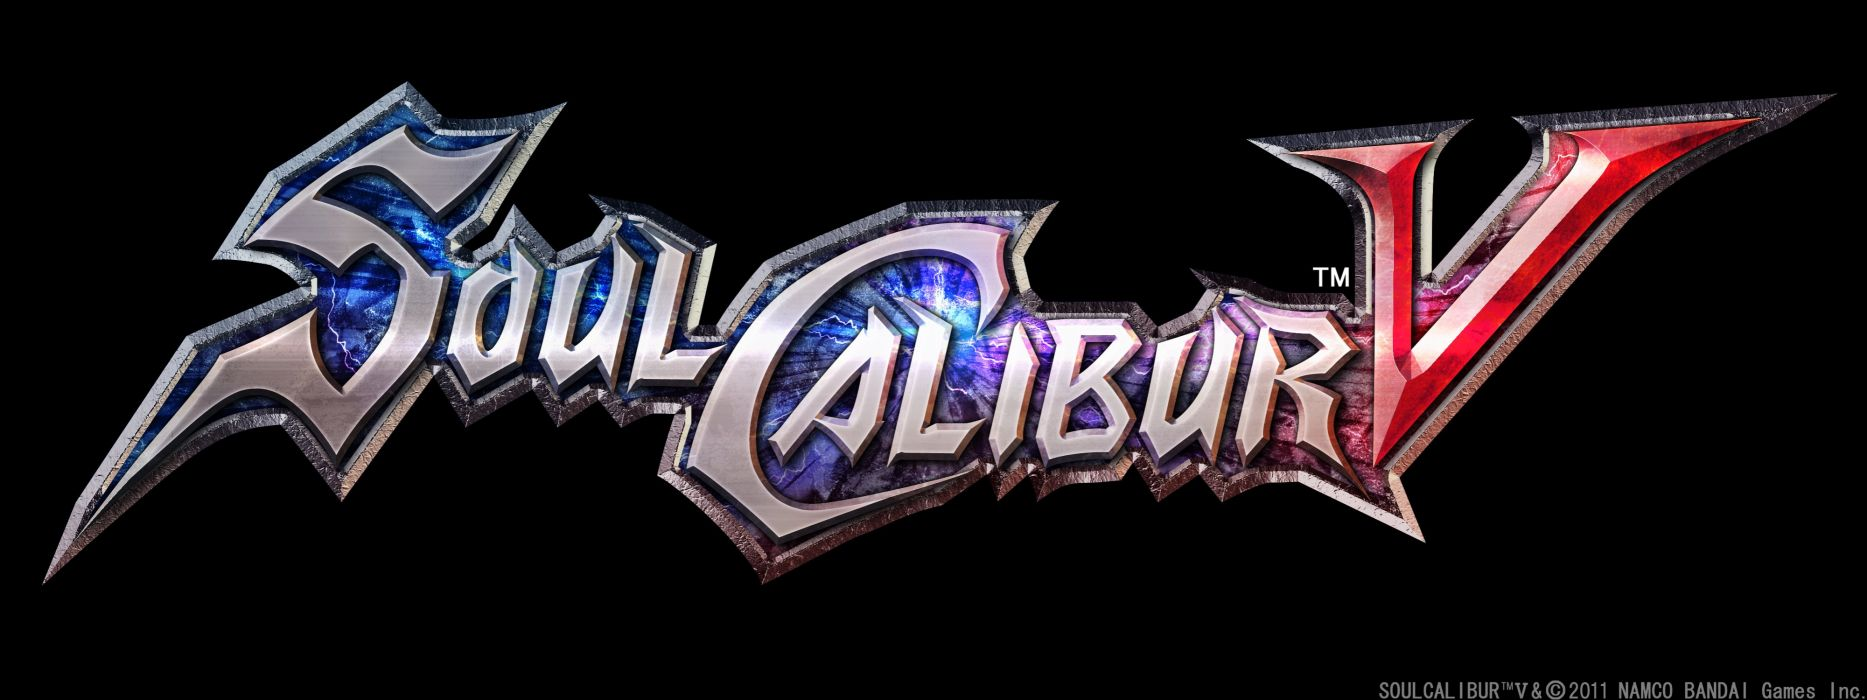 SOUL CALIBUR fantasy warrior game anime (2) wallpaper